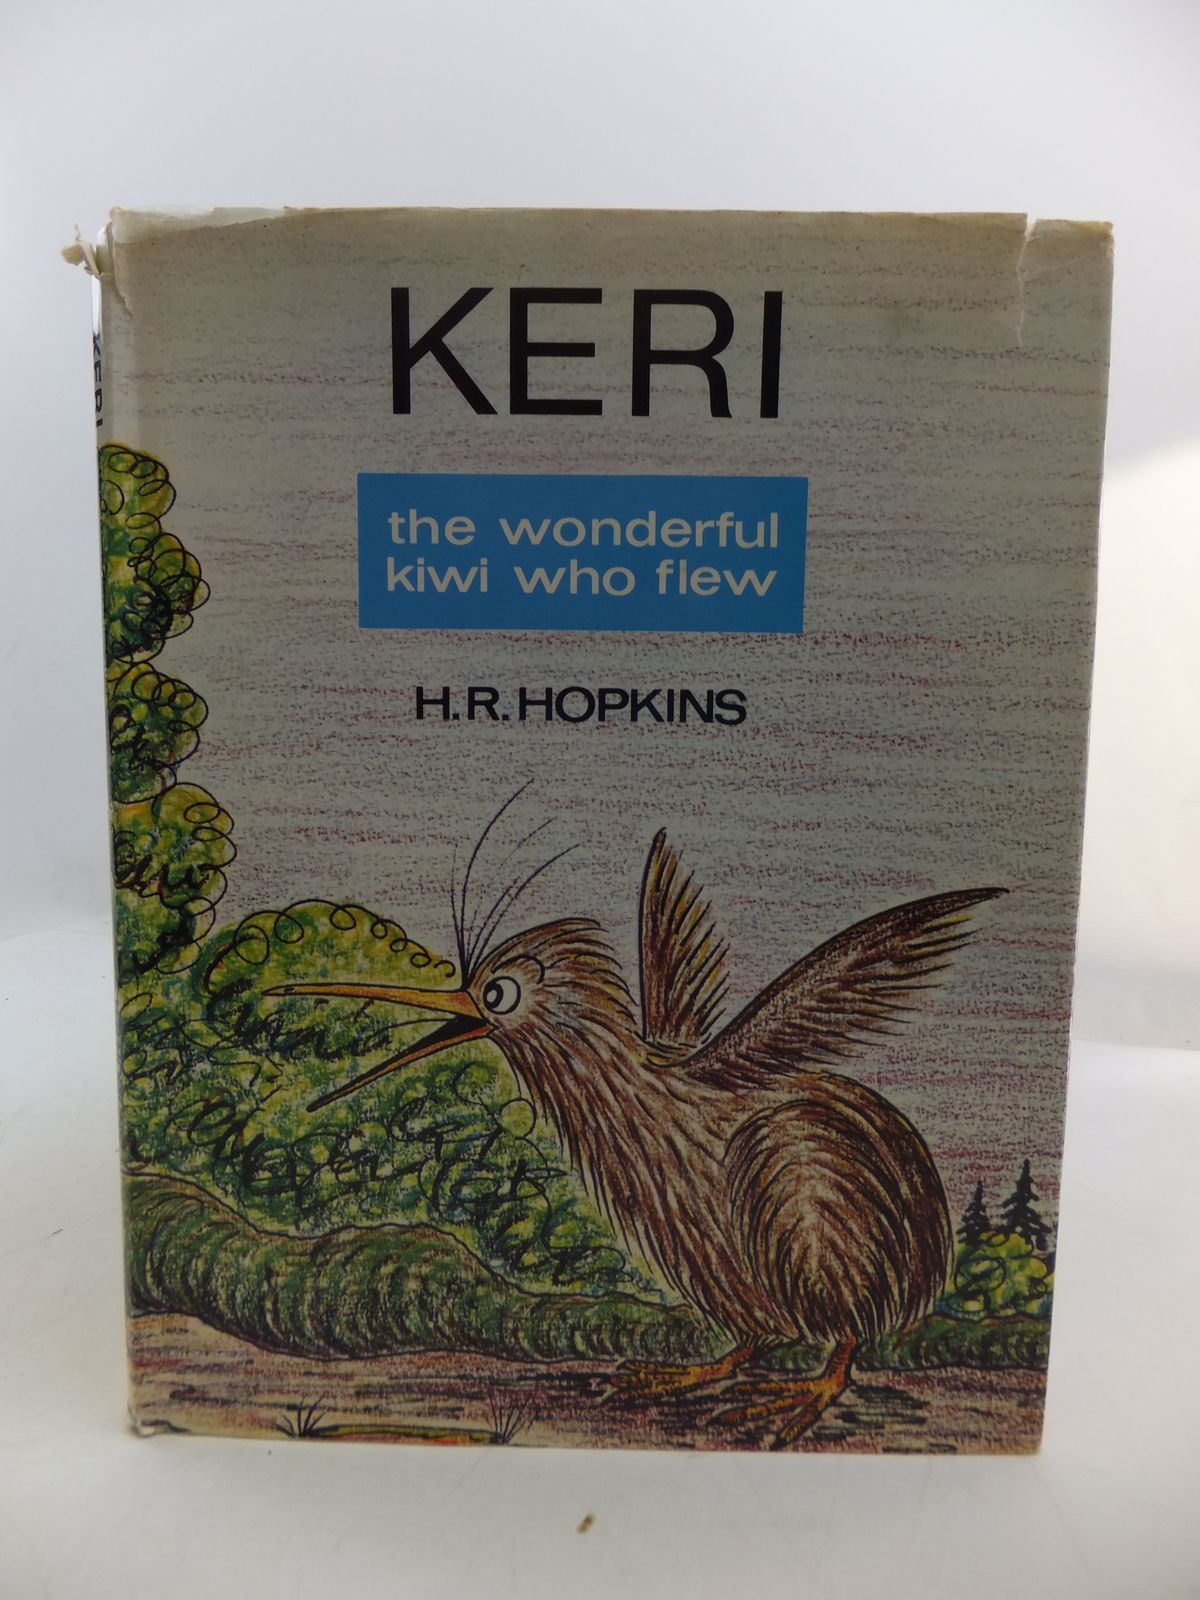 Photo of KERI THE WONDERFUL KIWI WHO FLEW written by Hopkins, H.R. illustrated by Hopkins, H.R. published by A.H. & A.W. Reed (STOCK CODE: 1807945)  for sale by Stella & Rose's Books